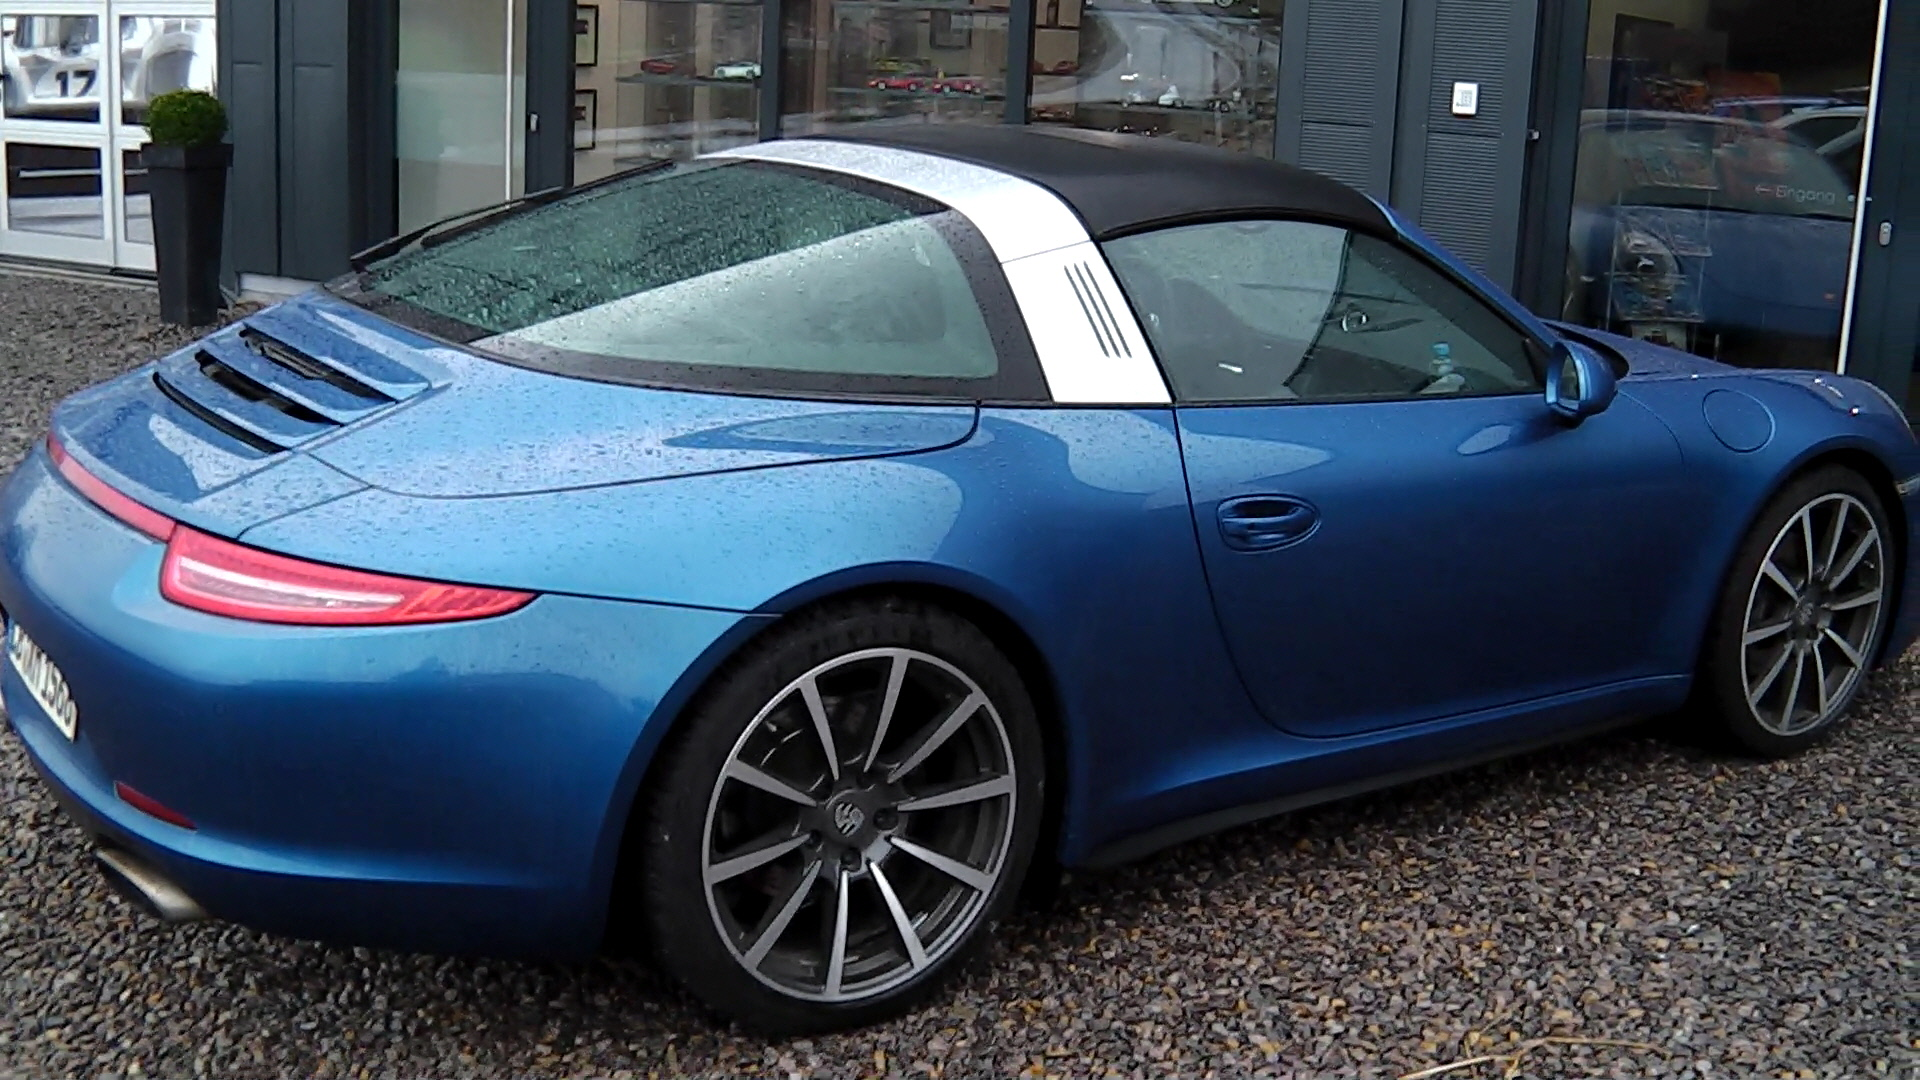 New Porsche 911 Targa Spotted On The Road Video